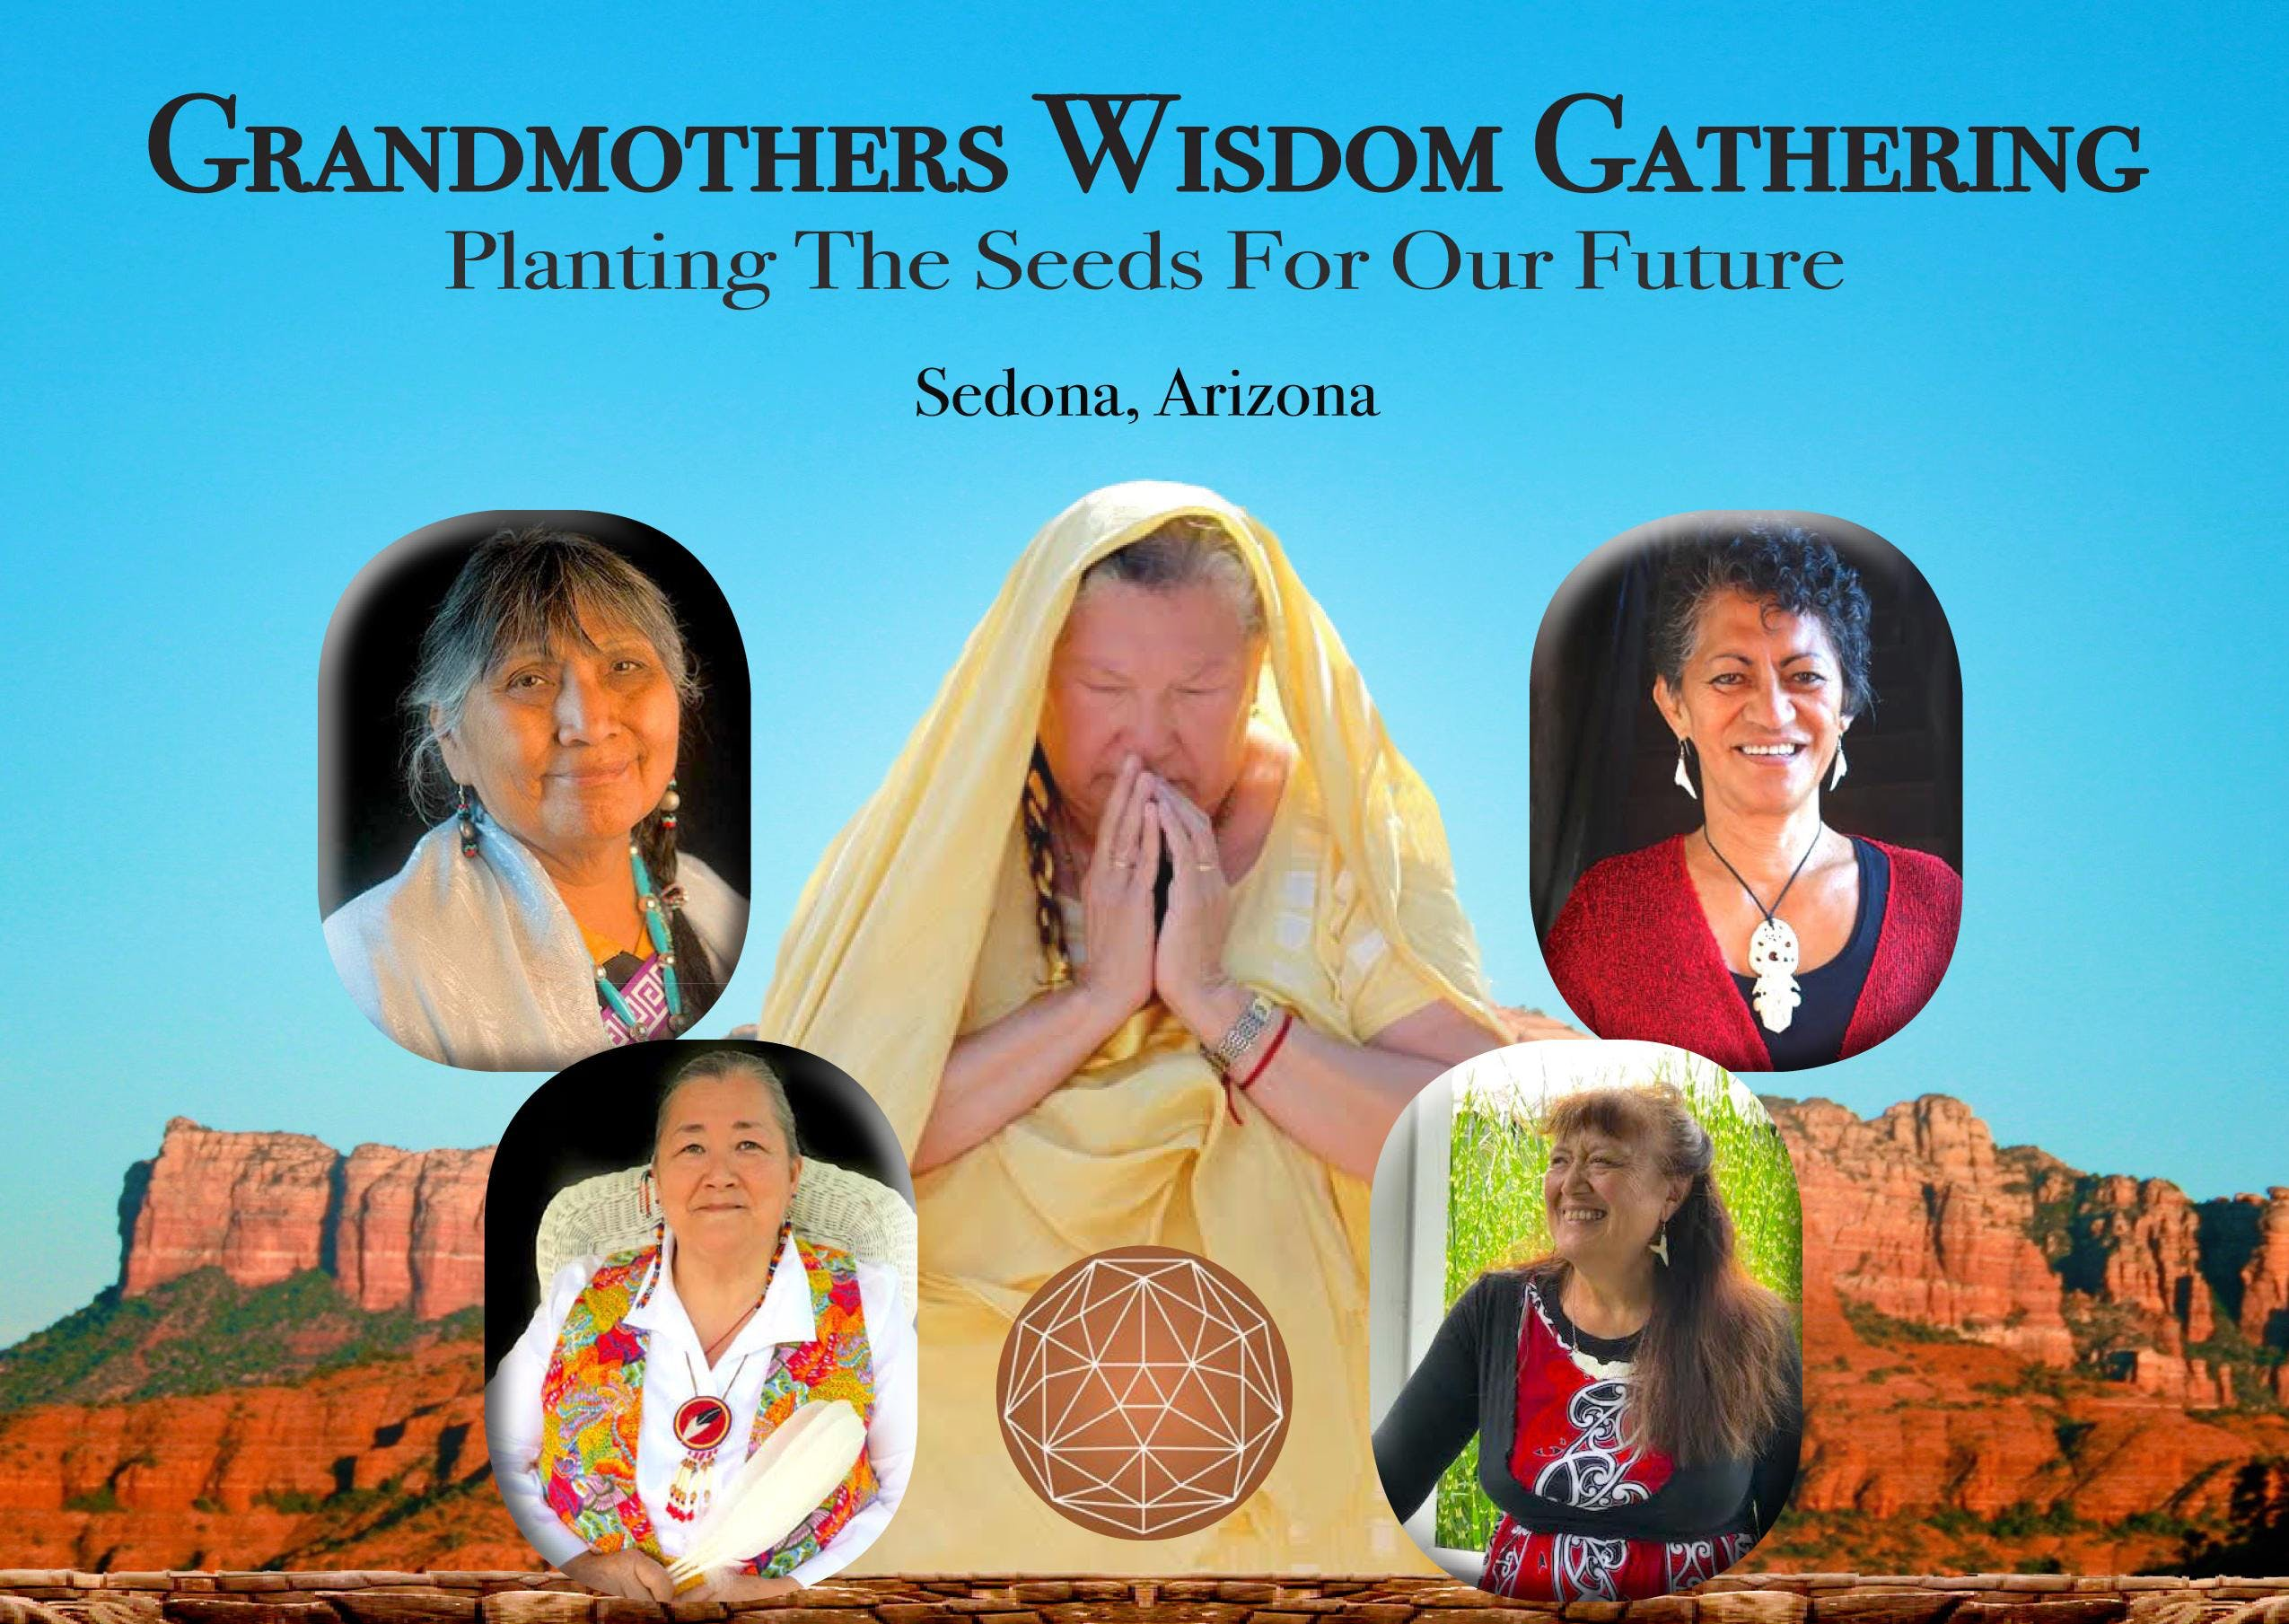 Grandmothers Wisdom Gathering - Planting The Seeds For Our Future